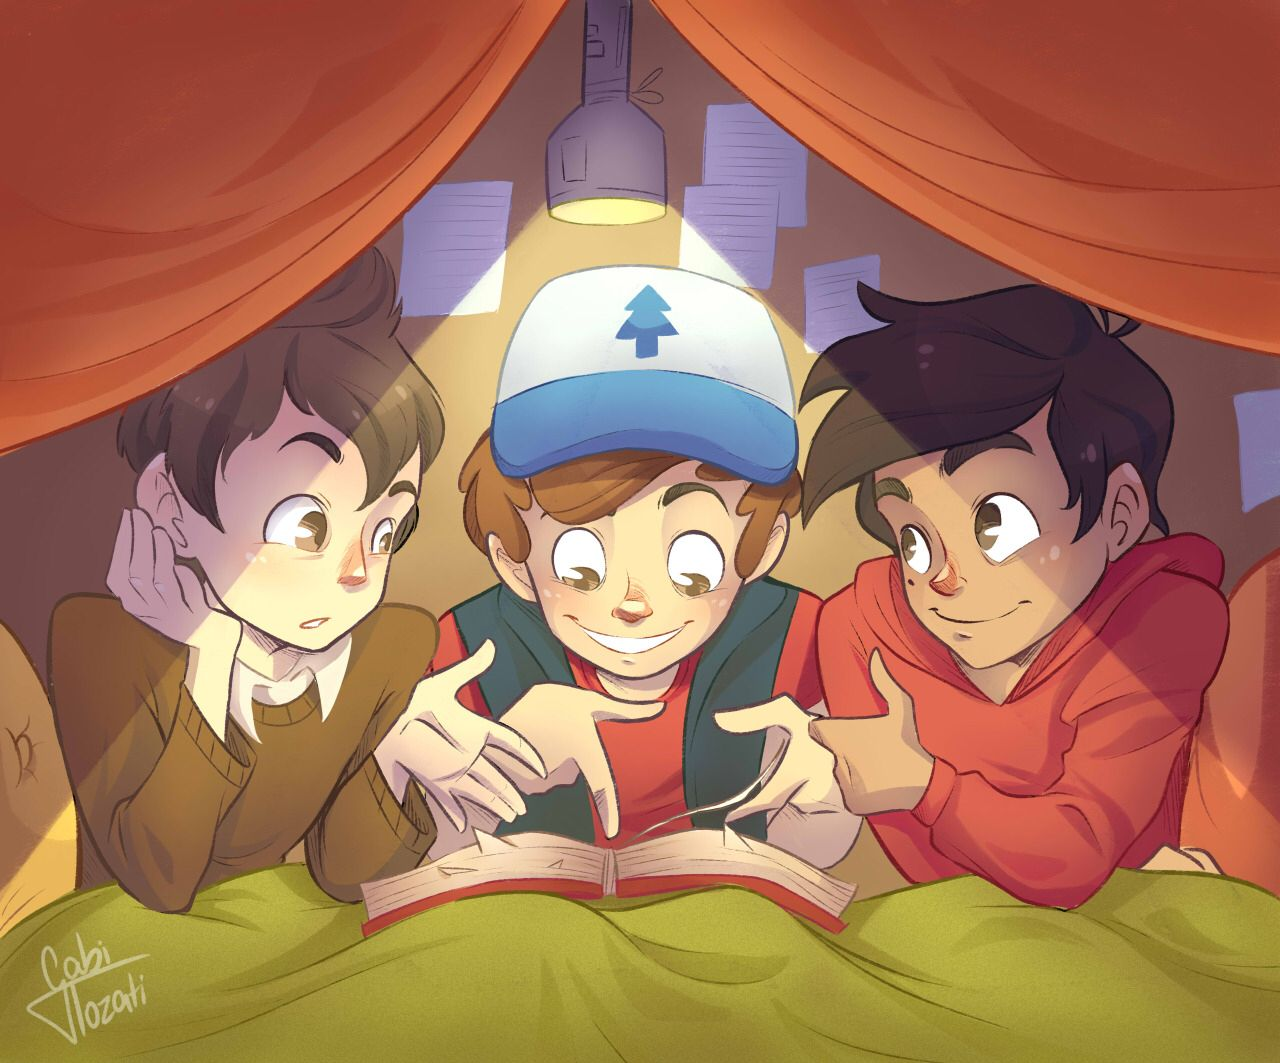 Gravity Falls,фэндомы,Star Vs The Forces Of Evil,Over The Garden Wall,GF  Персонажи,Dipper Pines,Mabel Pines,Star Butterfly,Marco Diaz | Art |  Pinterest ...